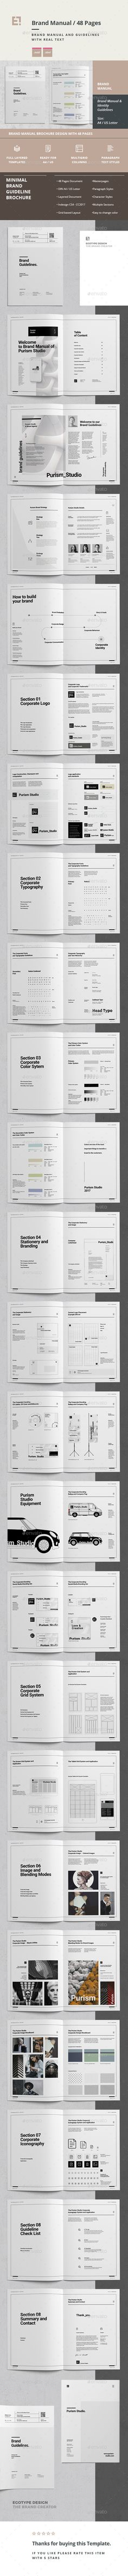 Brand Manual and Identity Template ¨C Corporate Design Brochure ¨C with real text! Minimal and Professional Brand Manual and Ident Travel Brochure Template, Branding Template, Bi Fold Brochure, Corporate Brochure, Corporate Design, Brochure Design, Stationery Design, Branding Design, Corporate Identity